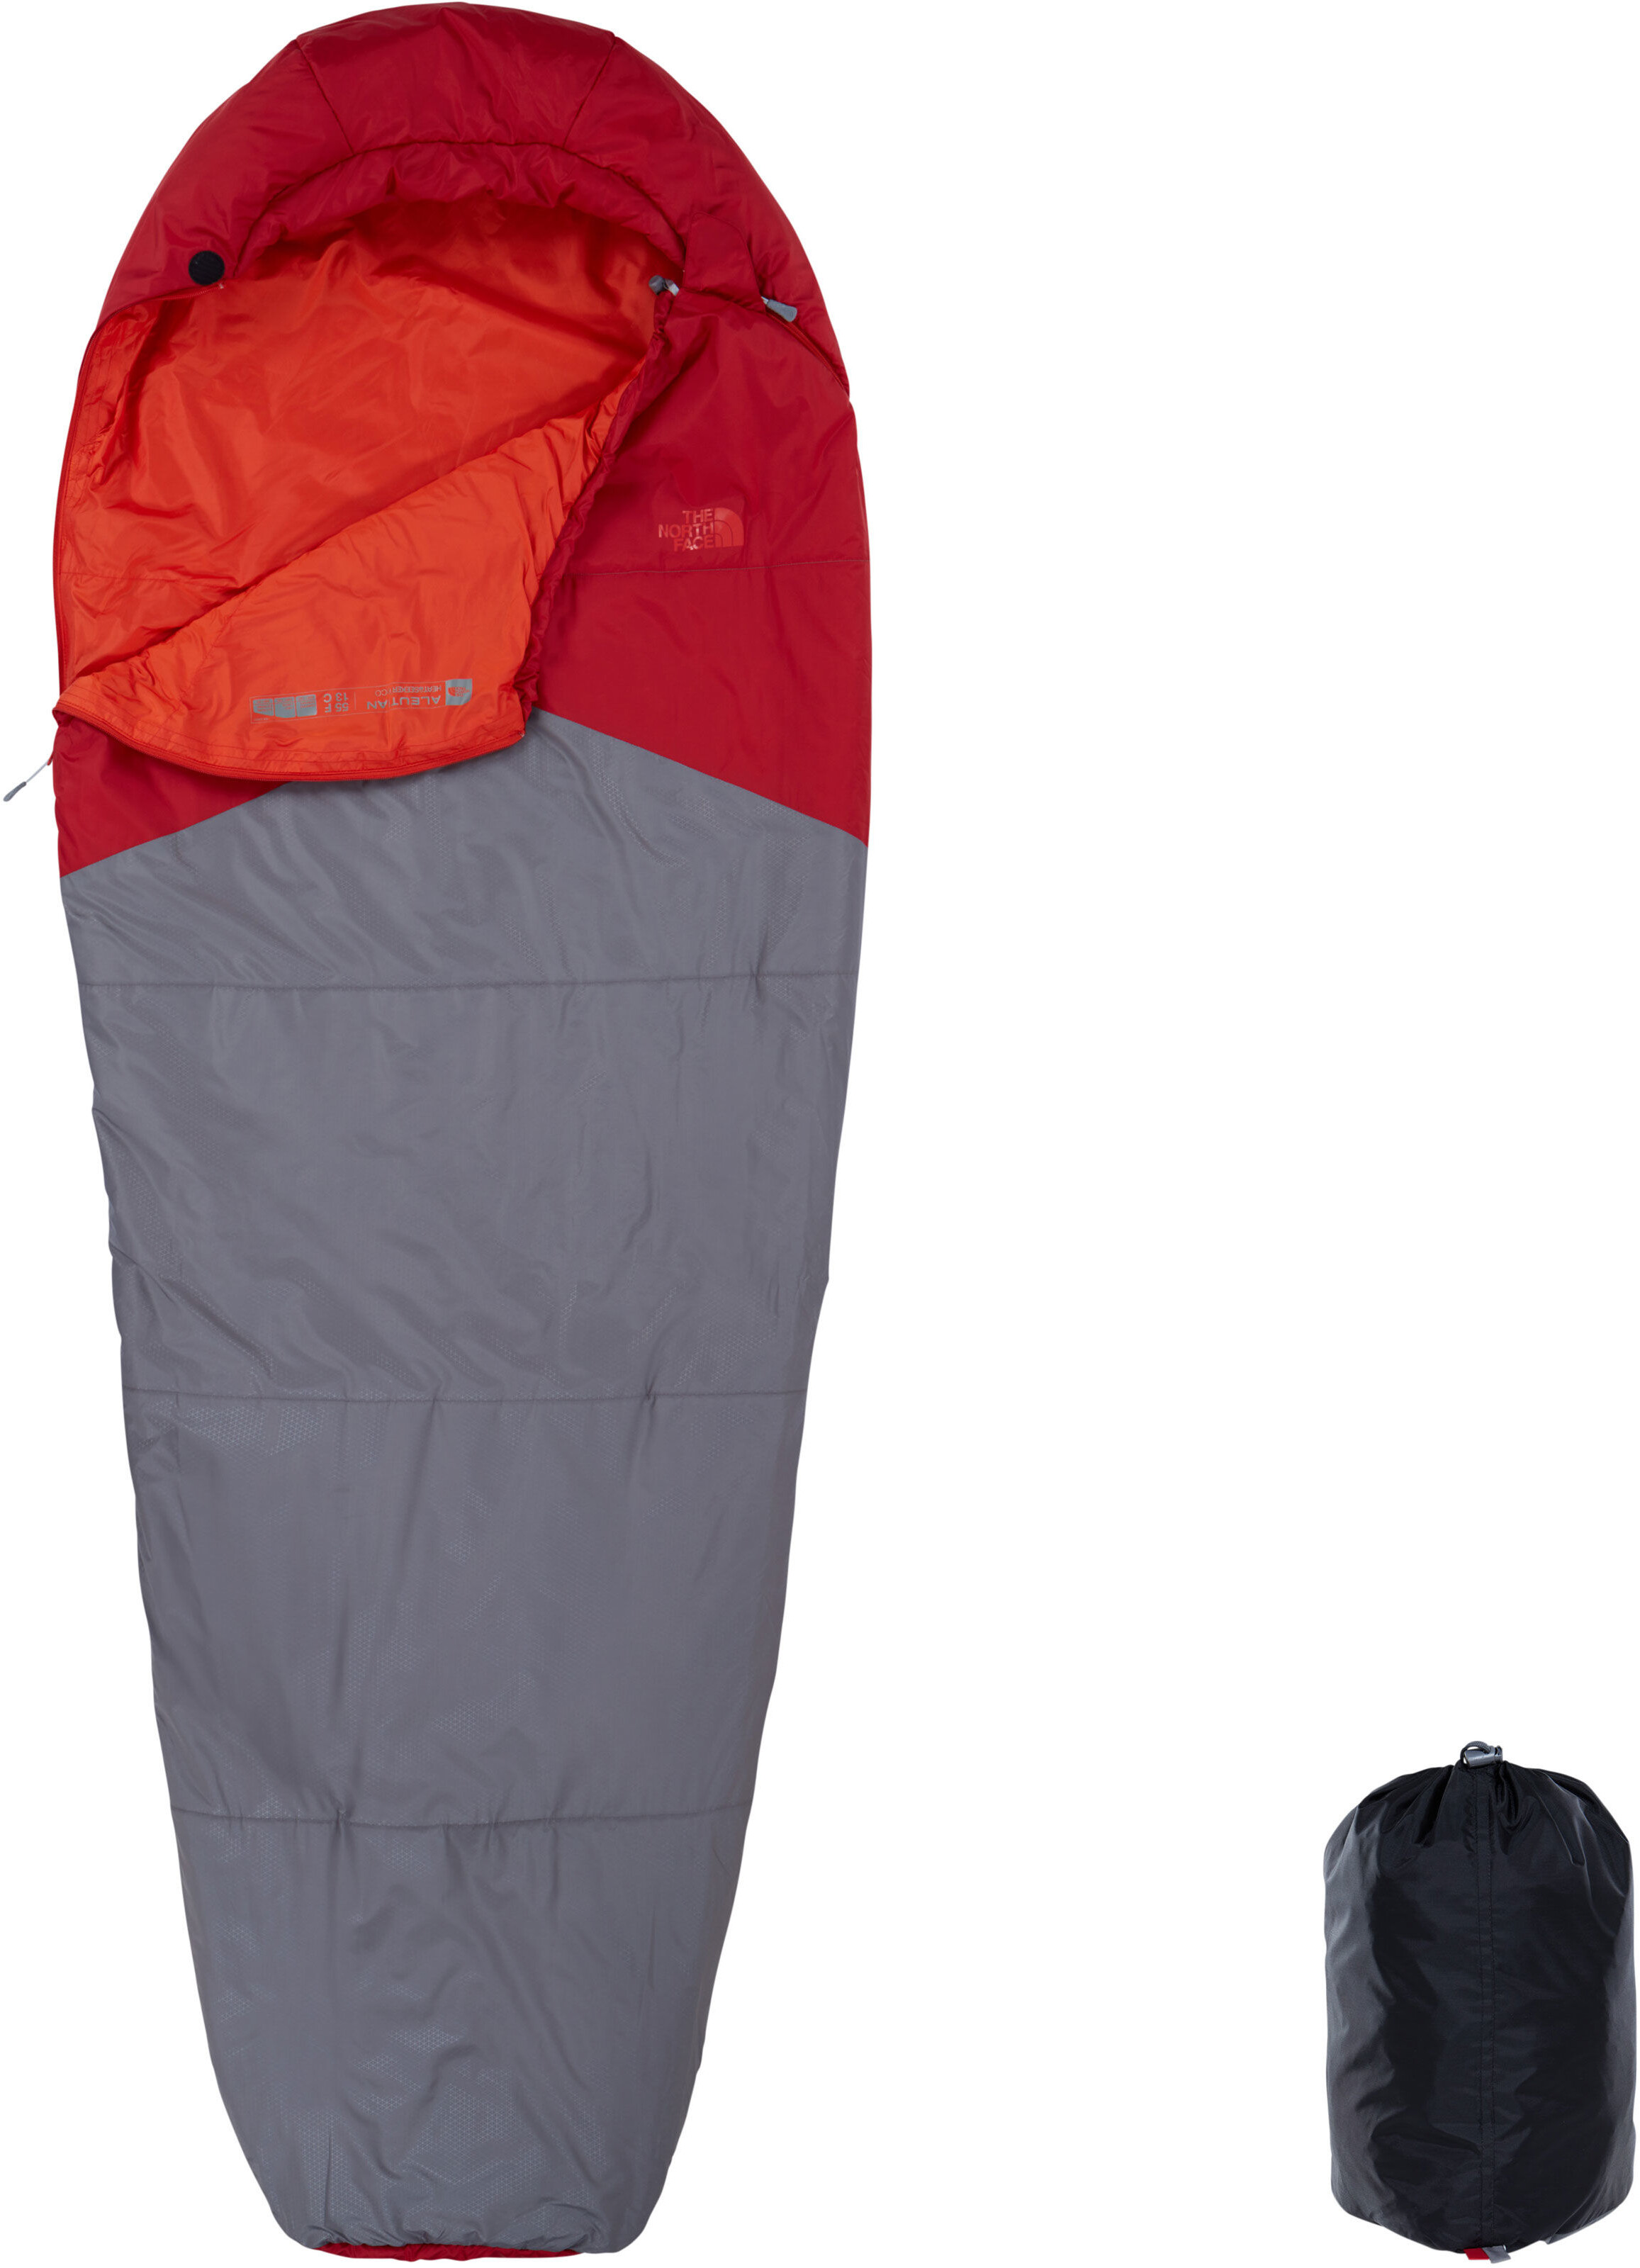 a599b016f8 The North Face Aleutian 55/13 - Sac de couchage - Long gris sur CAMPZ !